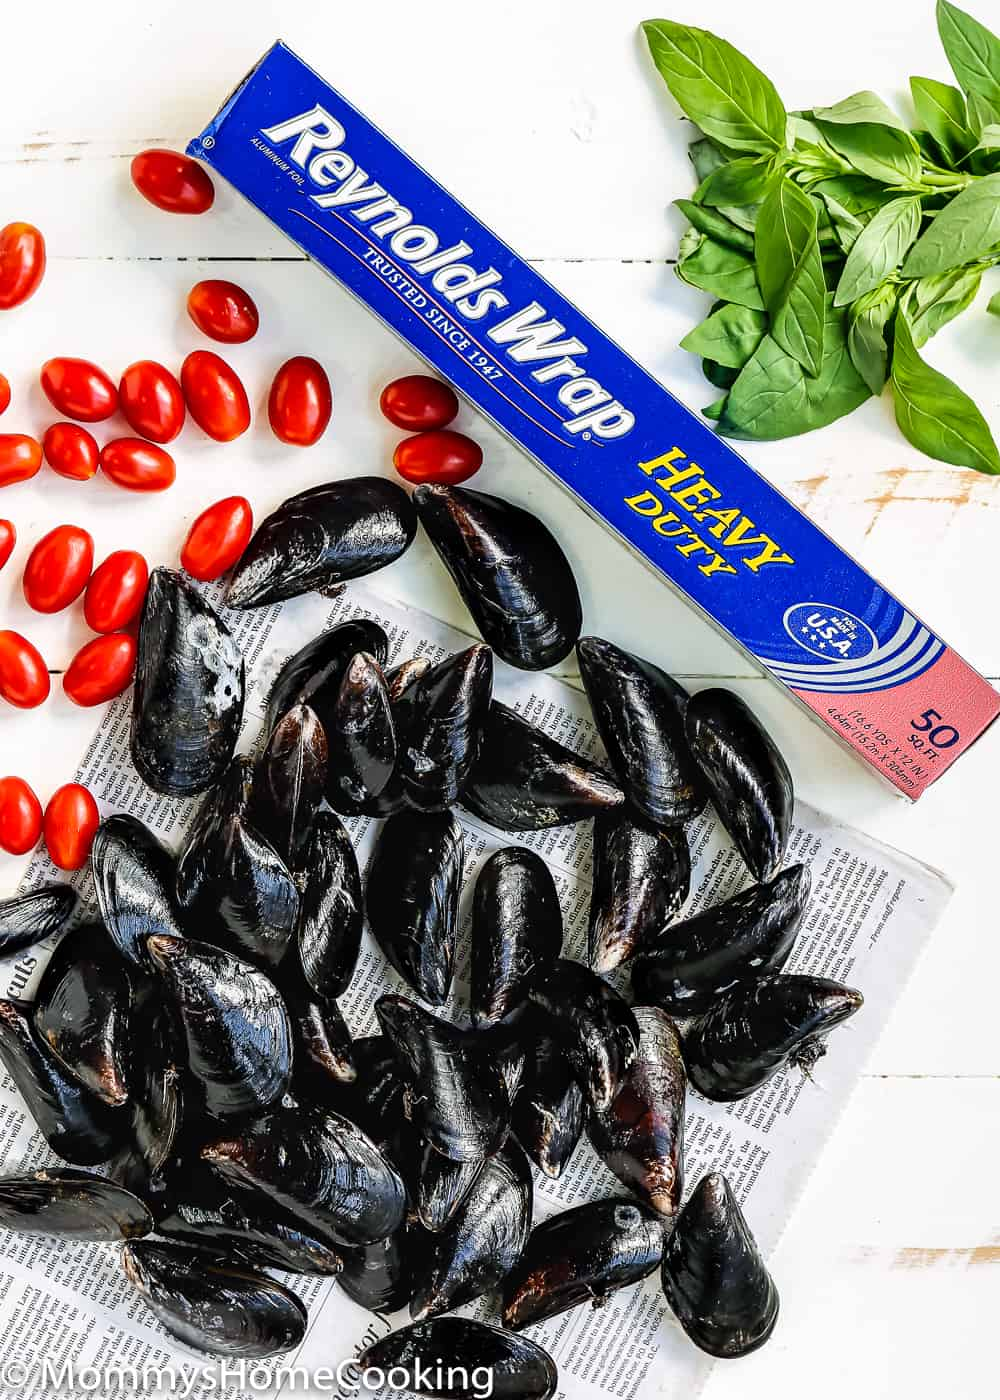 fresh mussels, tomatoes and a roll of foil